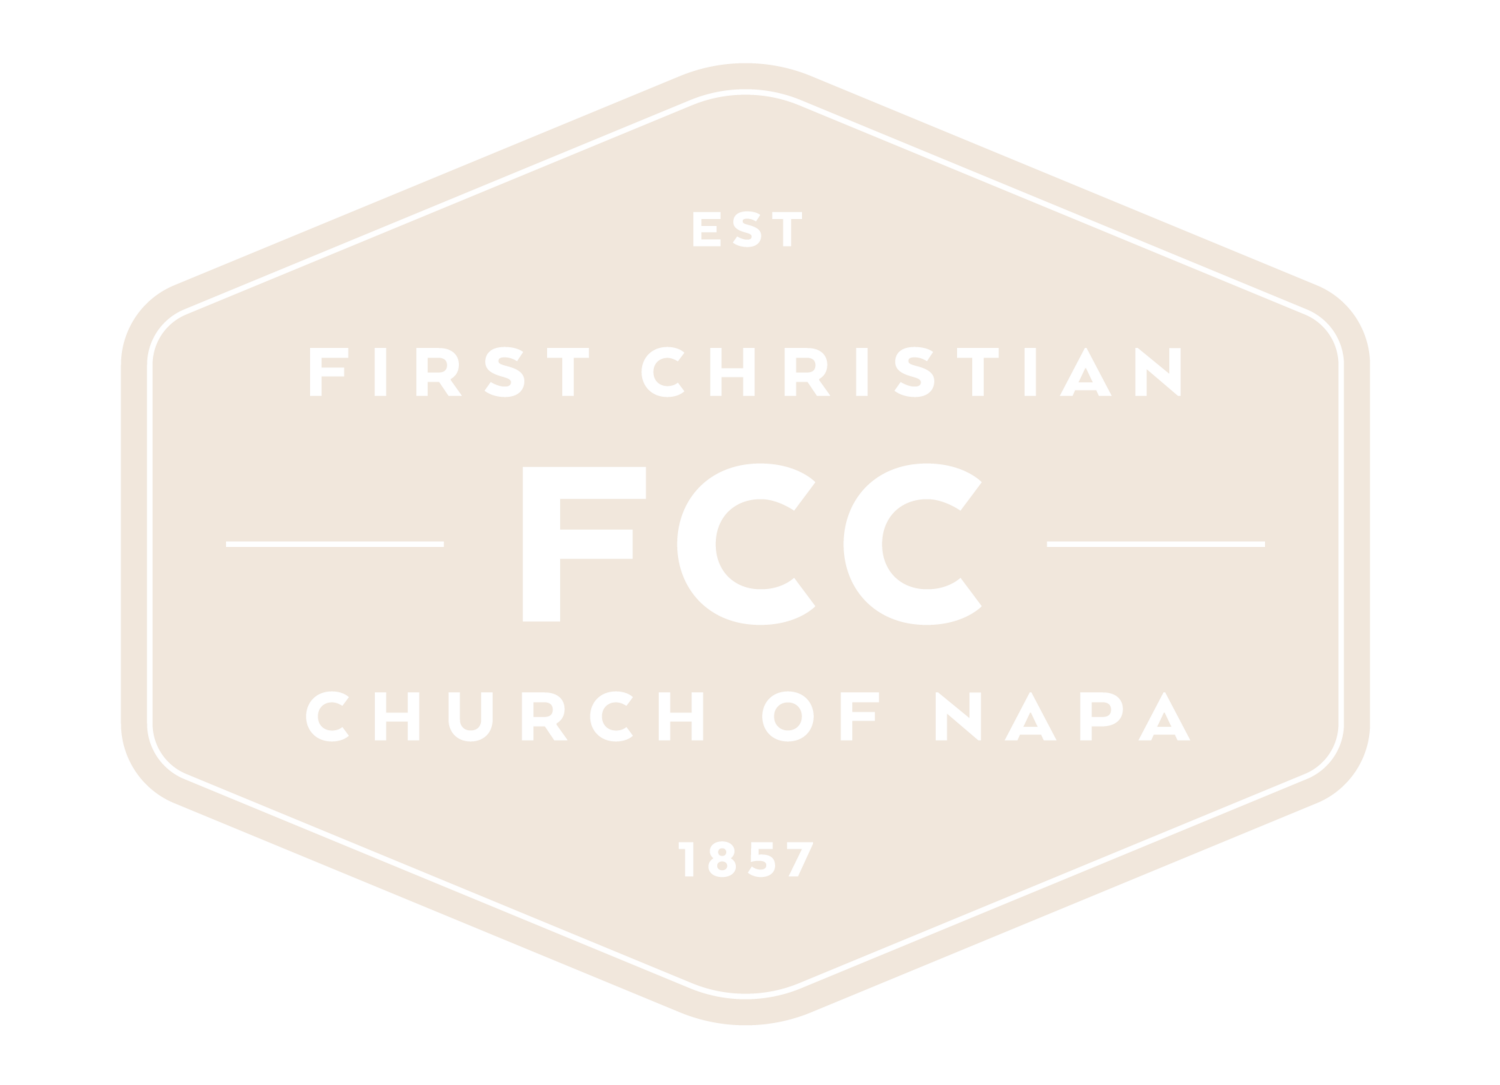 First Christian Church of Napa